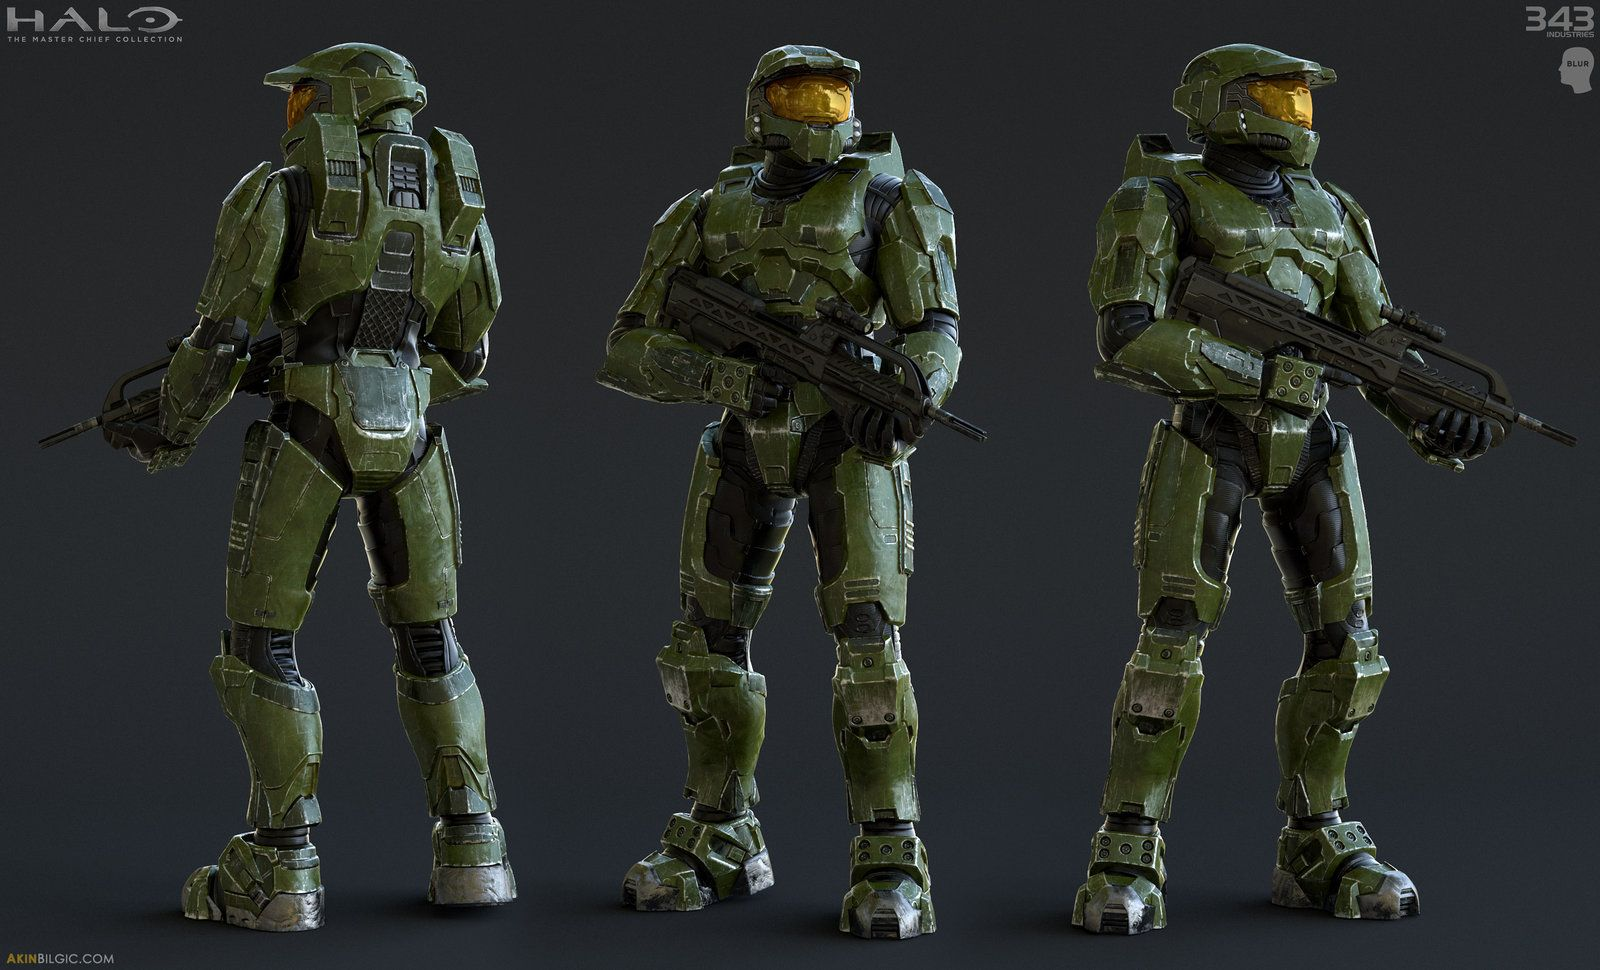 Halo Armor Render Google Search Halo Armor Halo 2 Halo